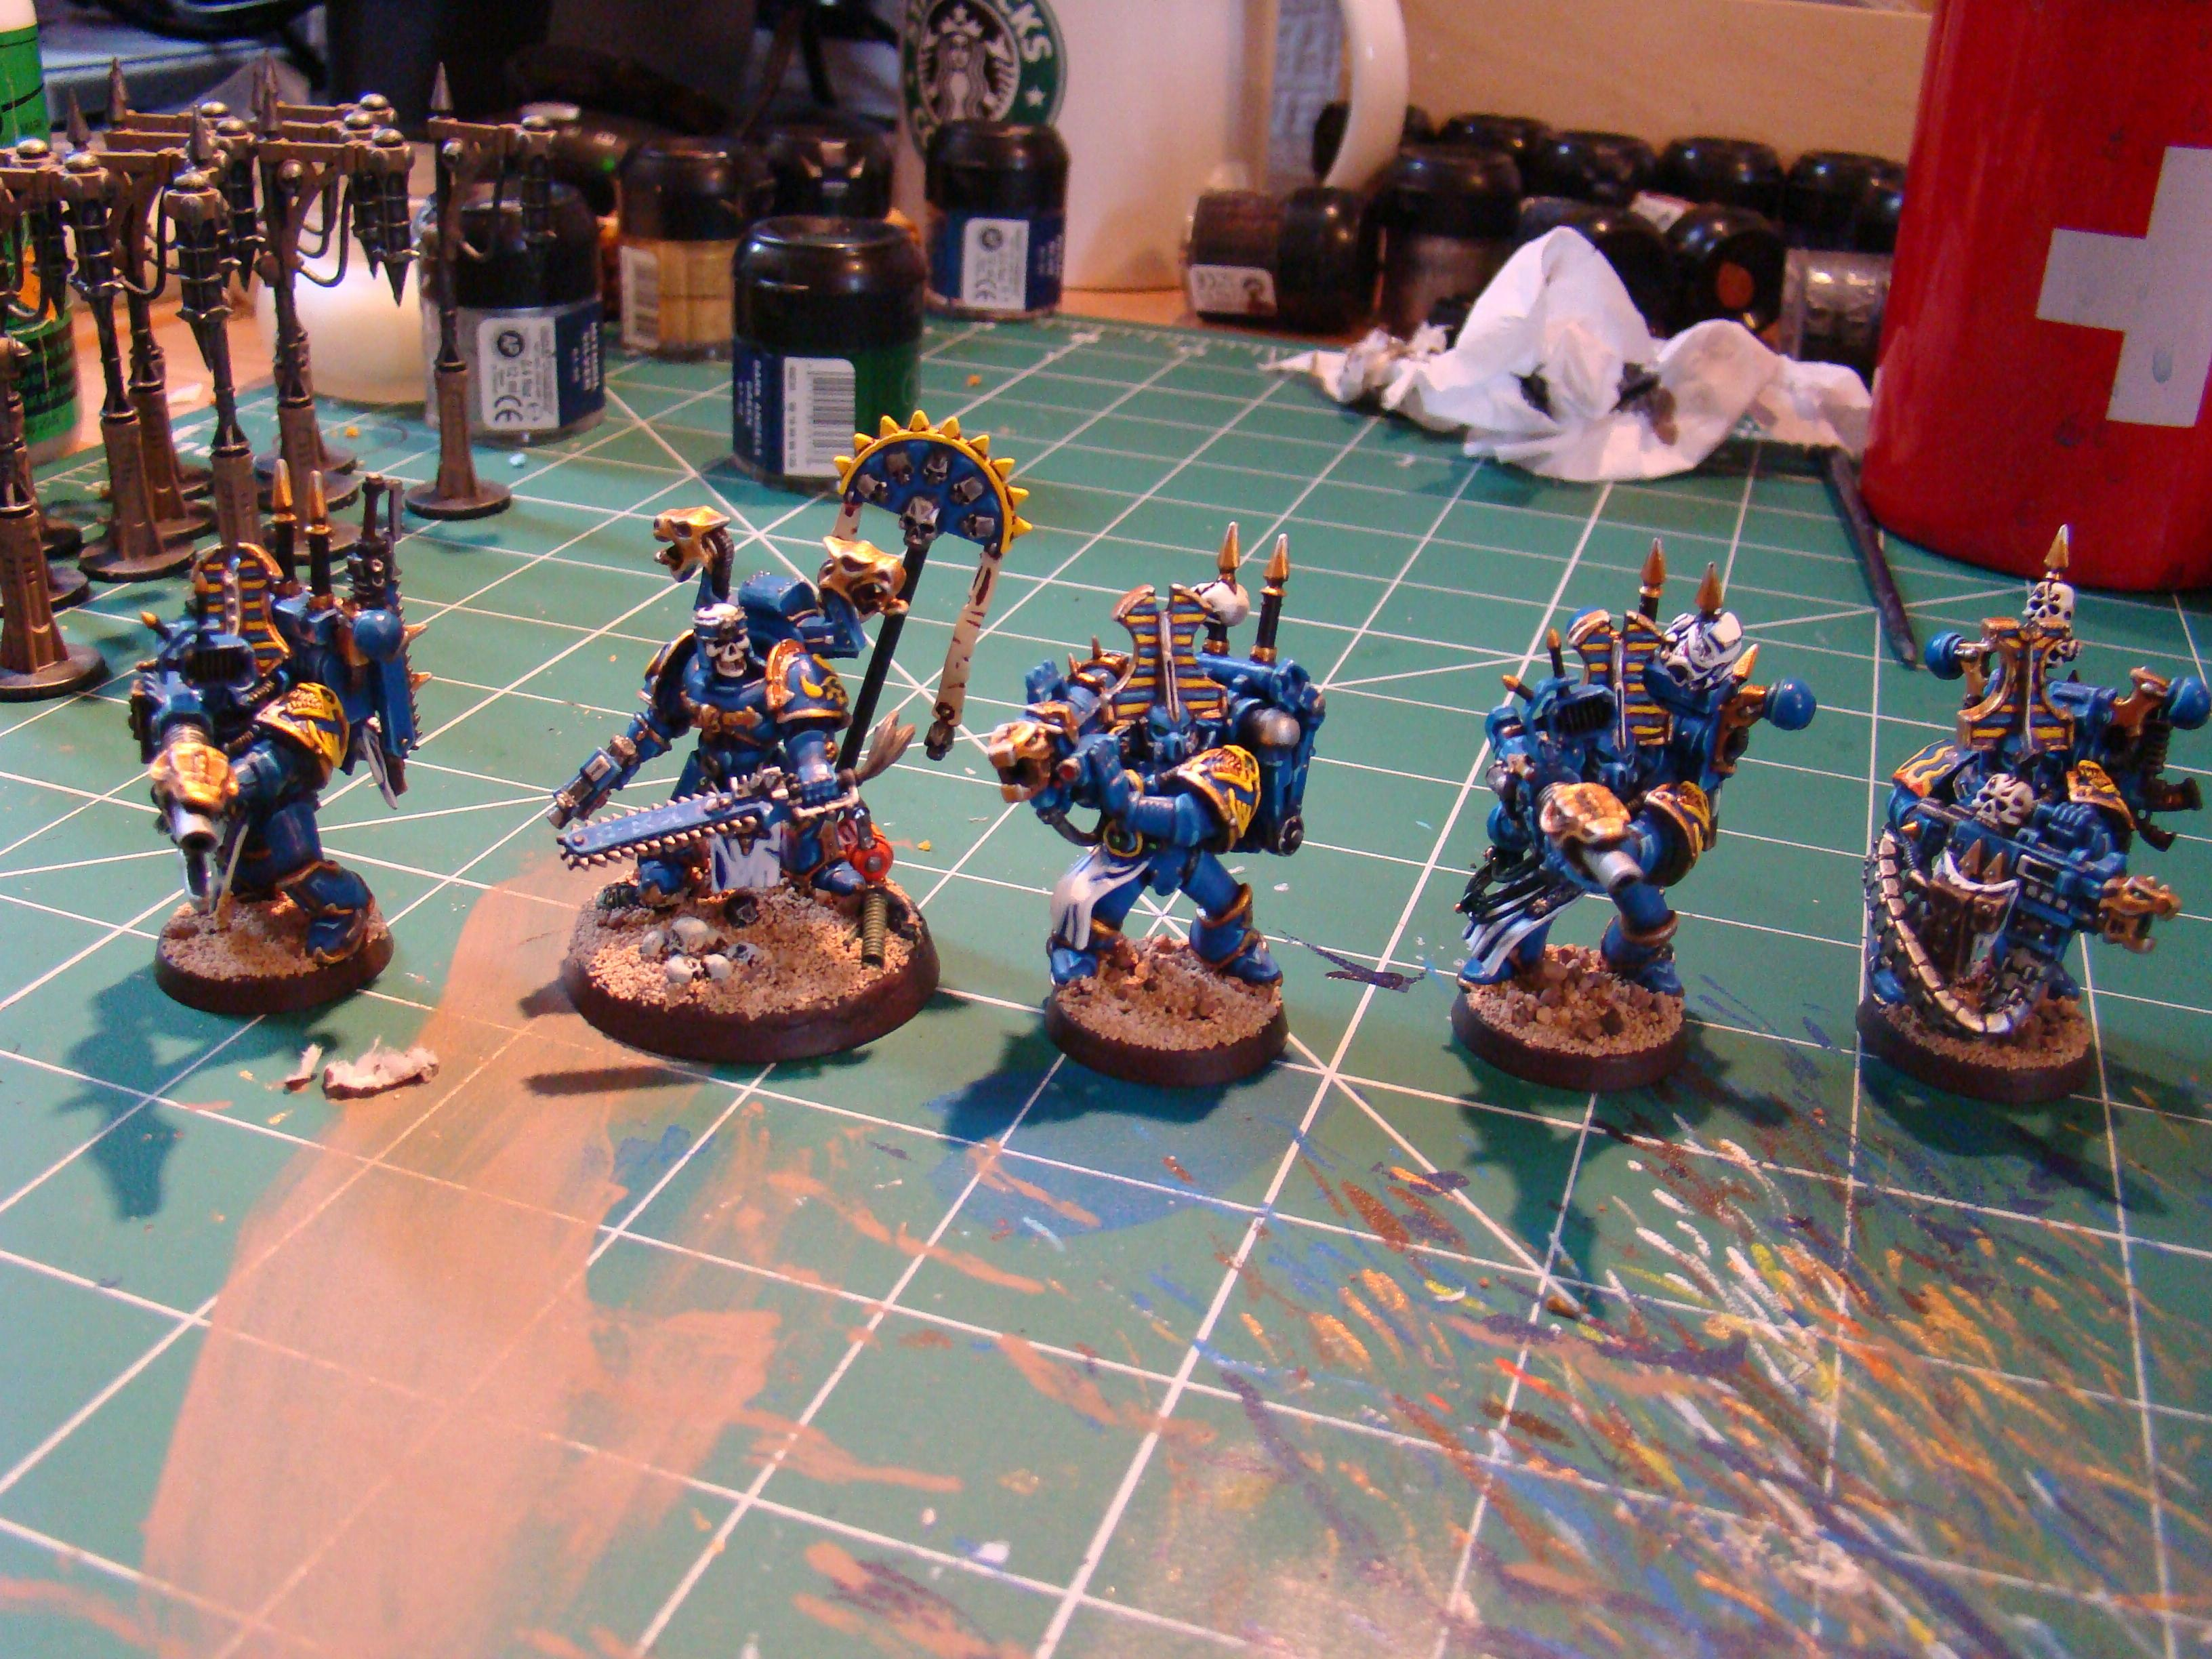 Chainsword, Chaos, Chaos Space Marines, Thousand Sons, Warhammer 40,000